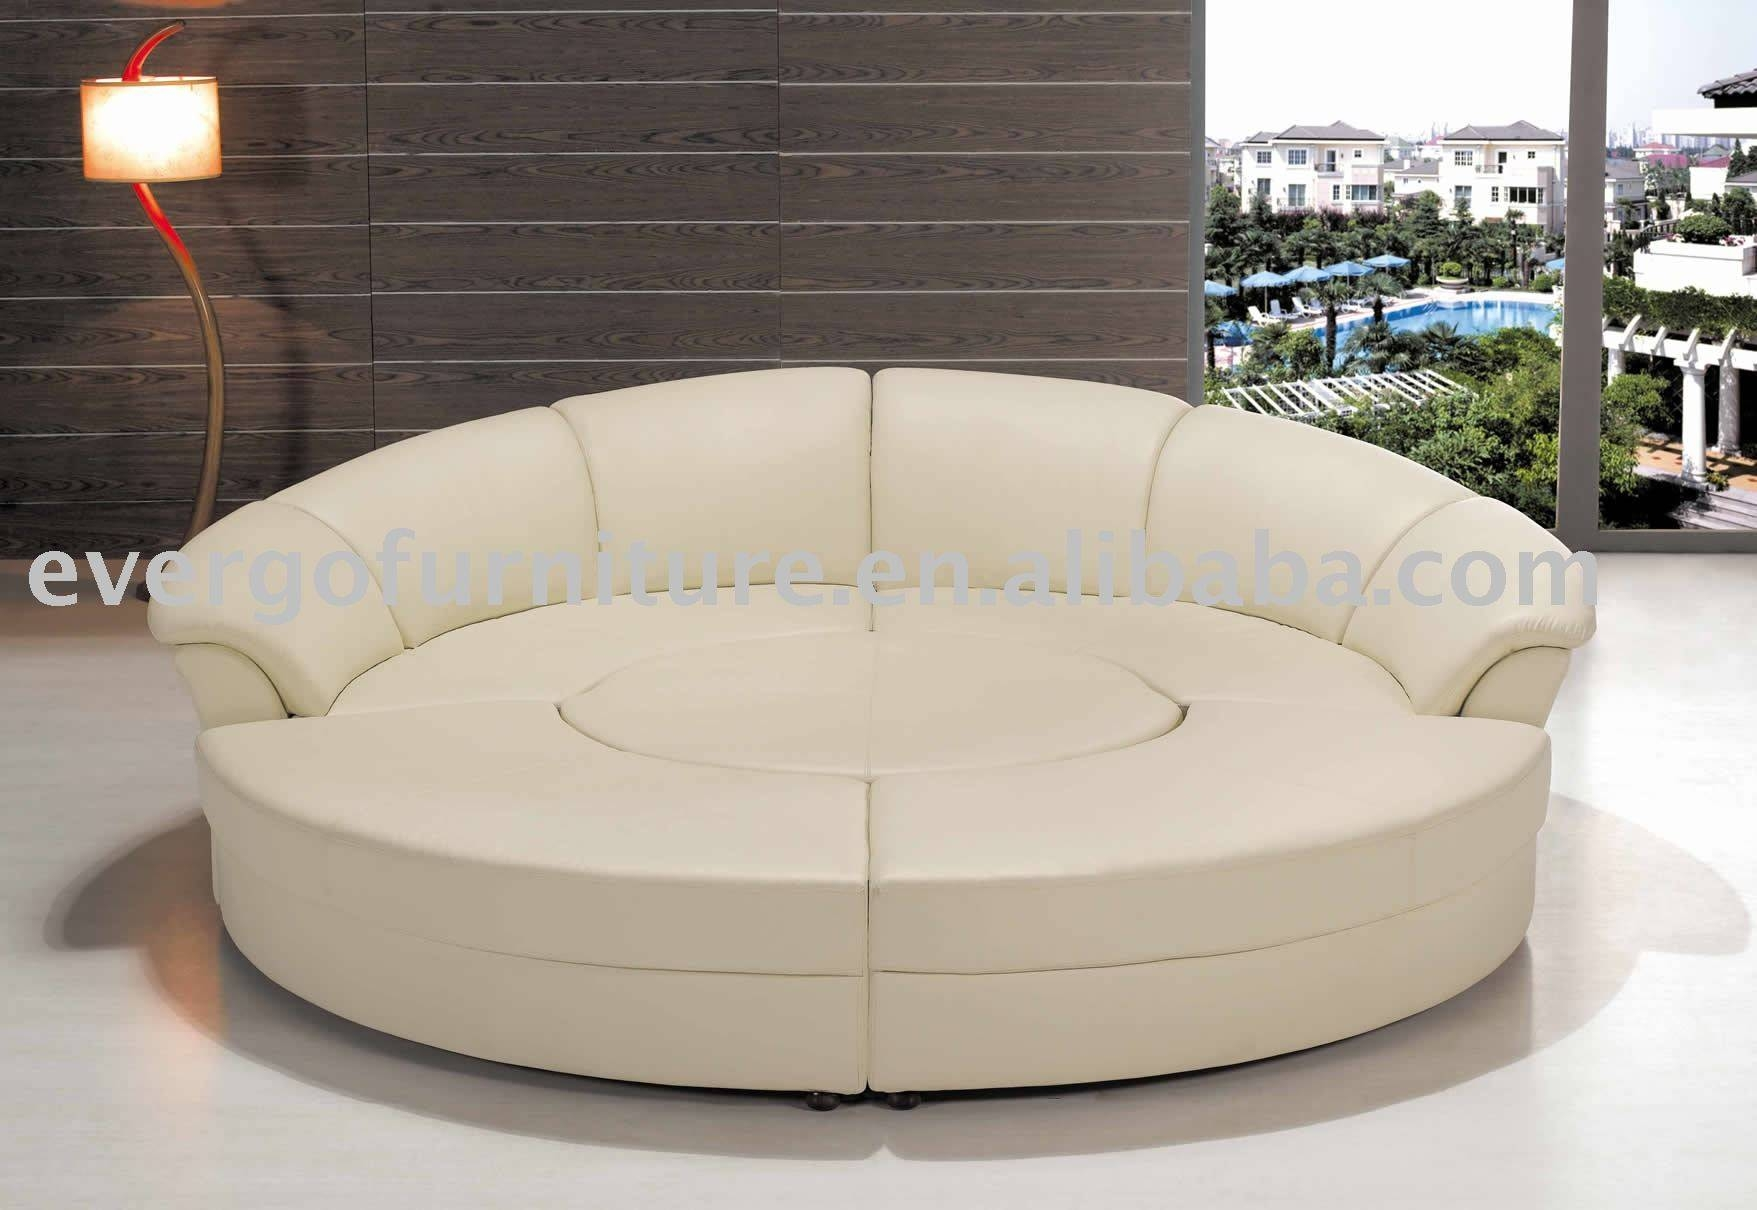 Round Sofas Furniture Best 20 Round Sofa Ideas On Pinterest intended for Rounded Sofa (Image 19 of 25)